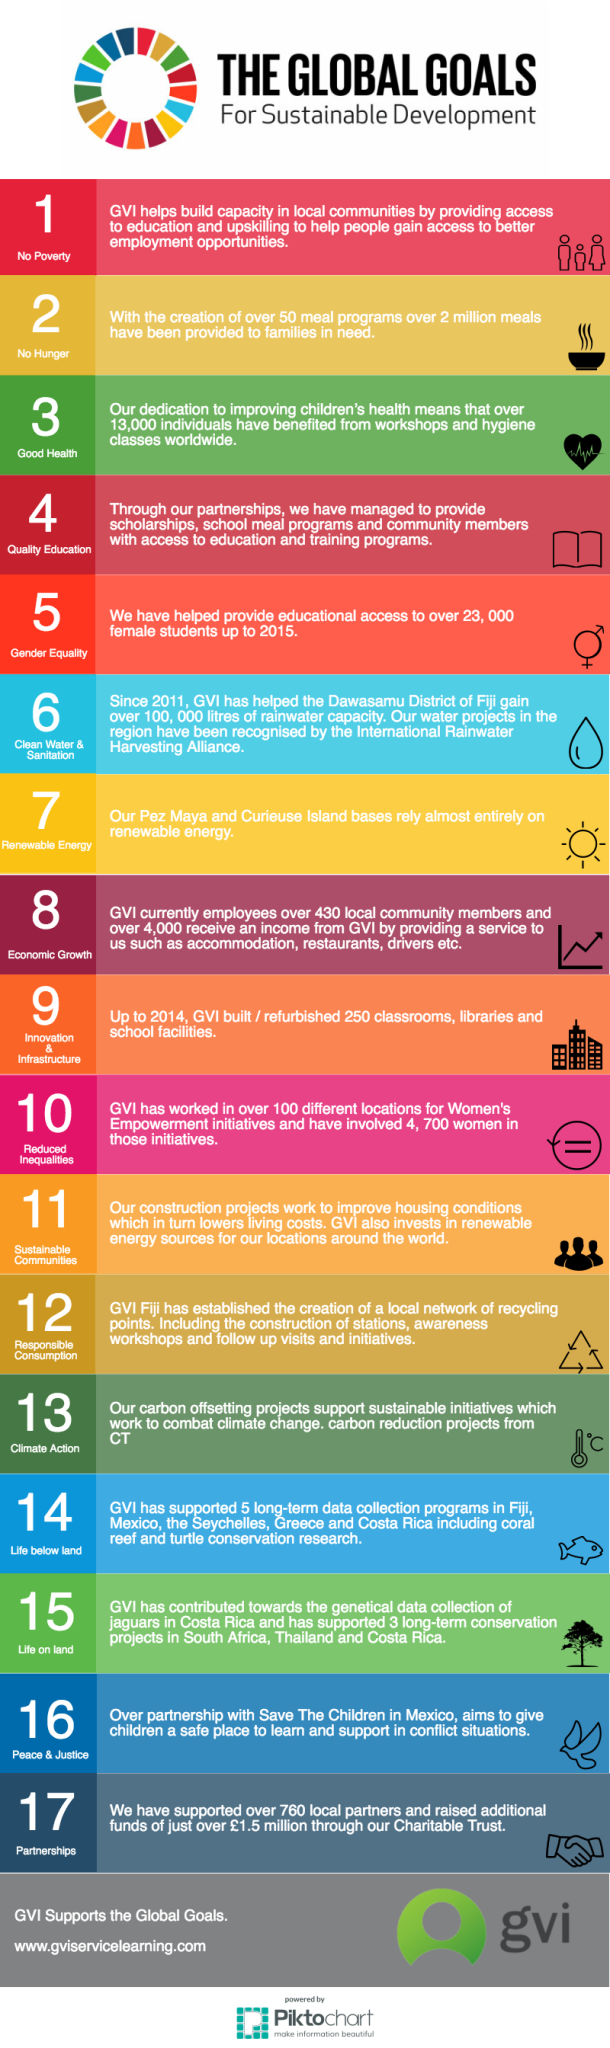 Infographic: How Volunteering Will Help us Achieve the Global Goals